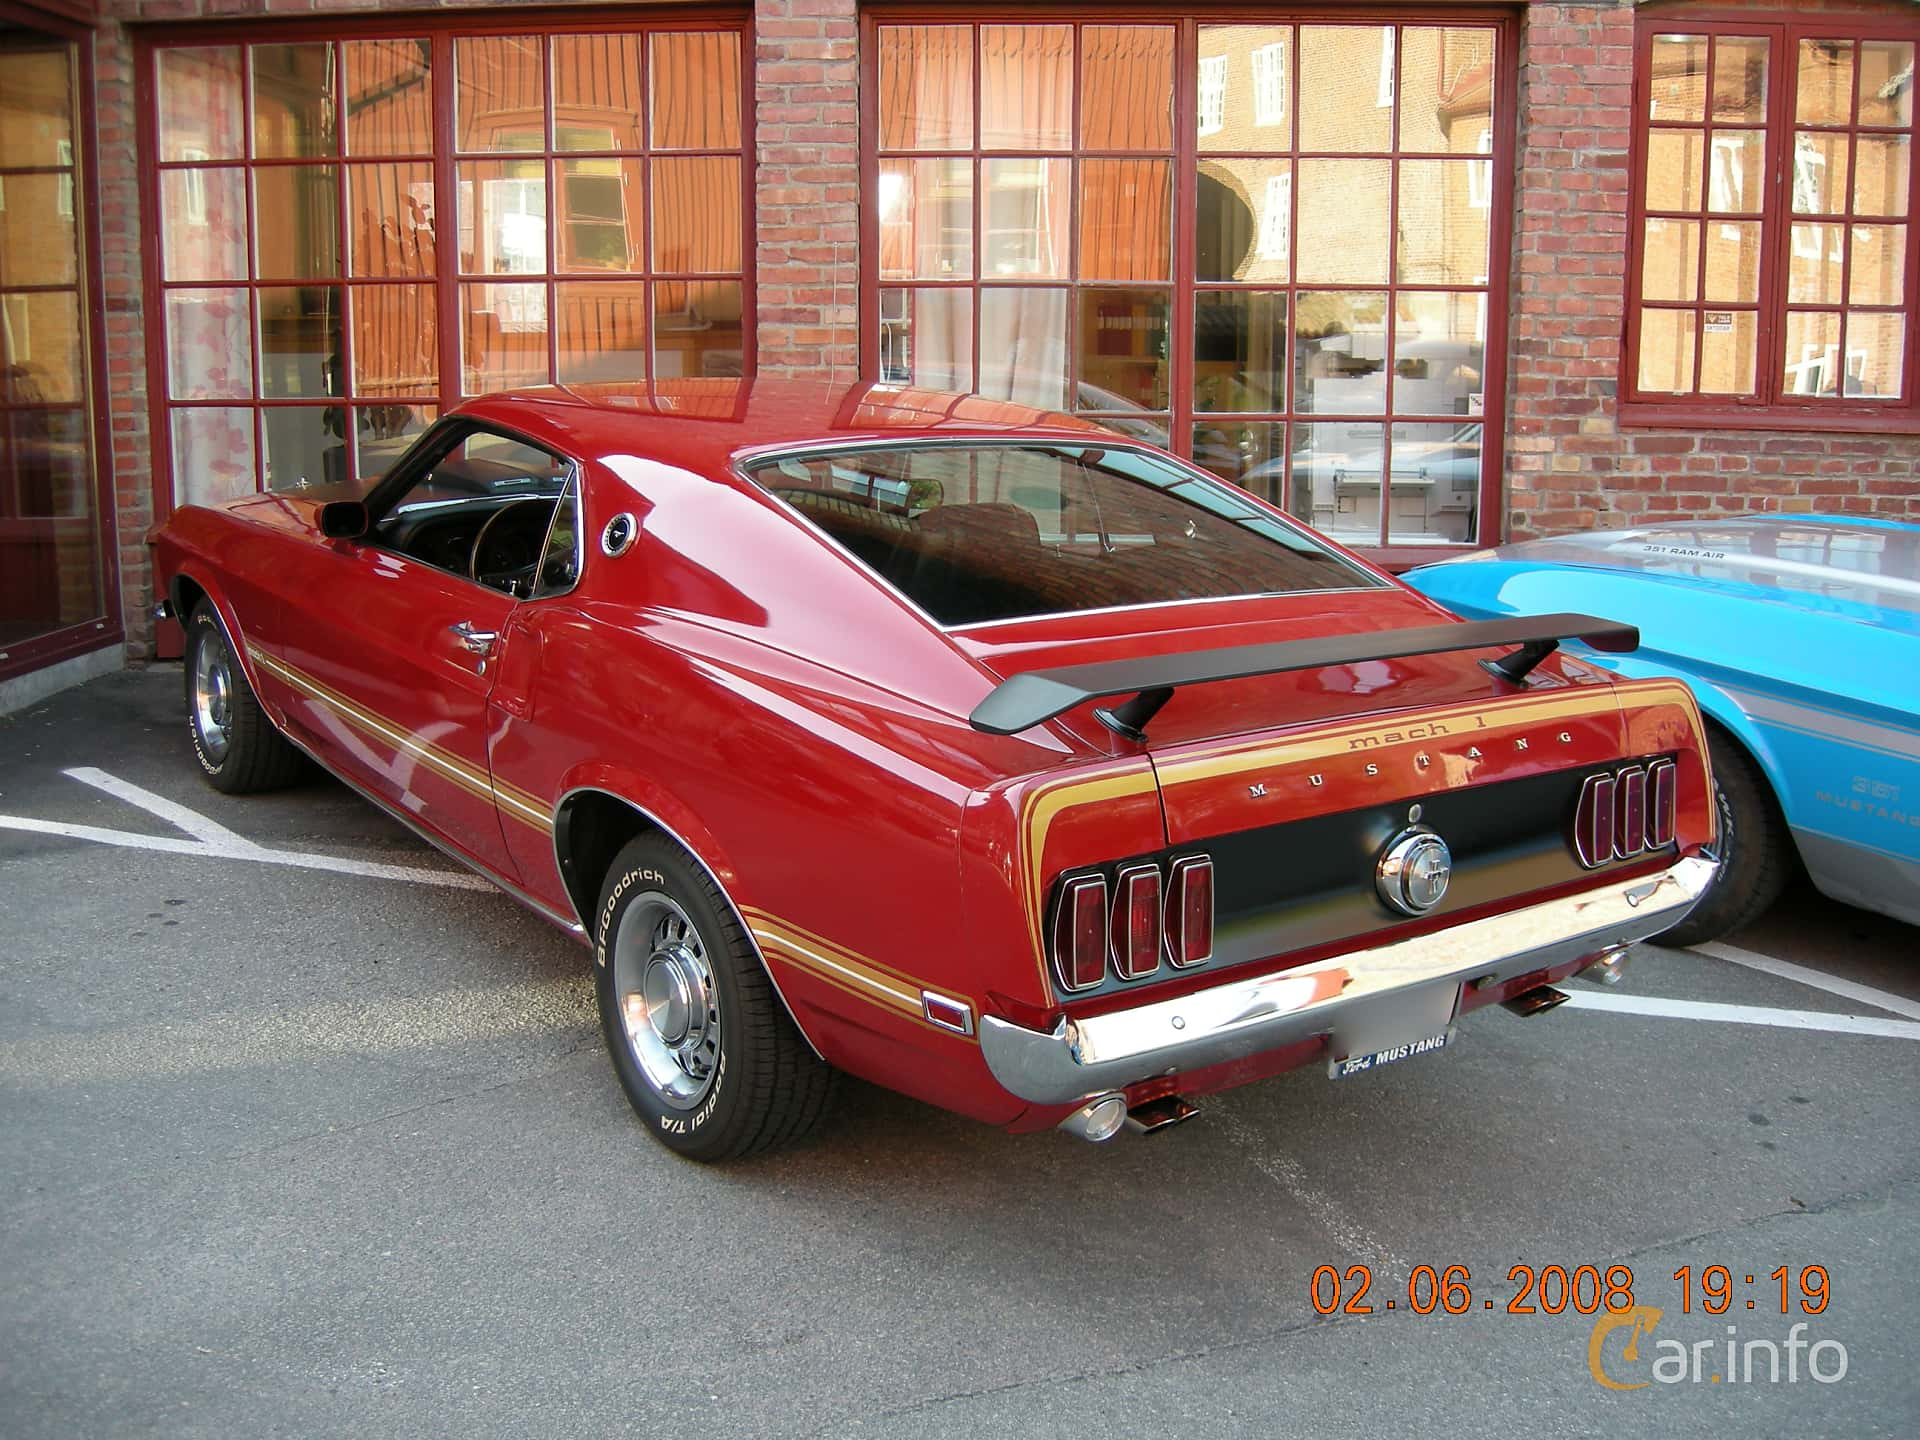 Ford Mustang Mach I 5.8 V8 Automatic, 254hp, 1969